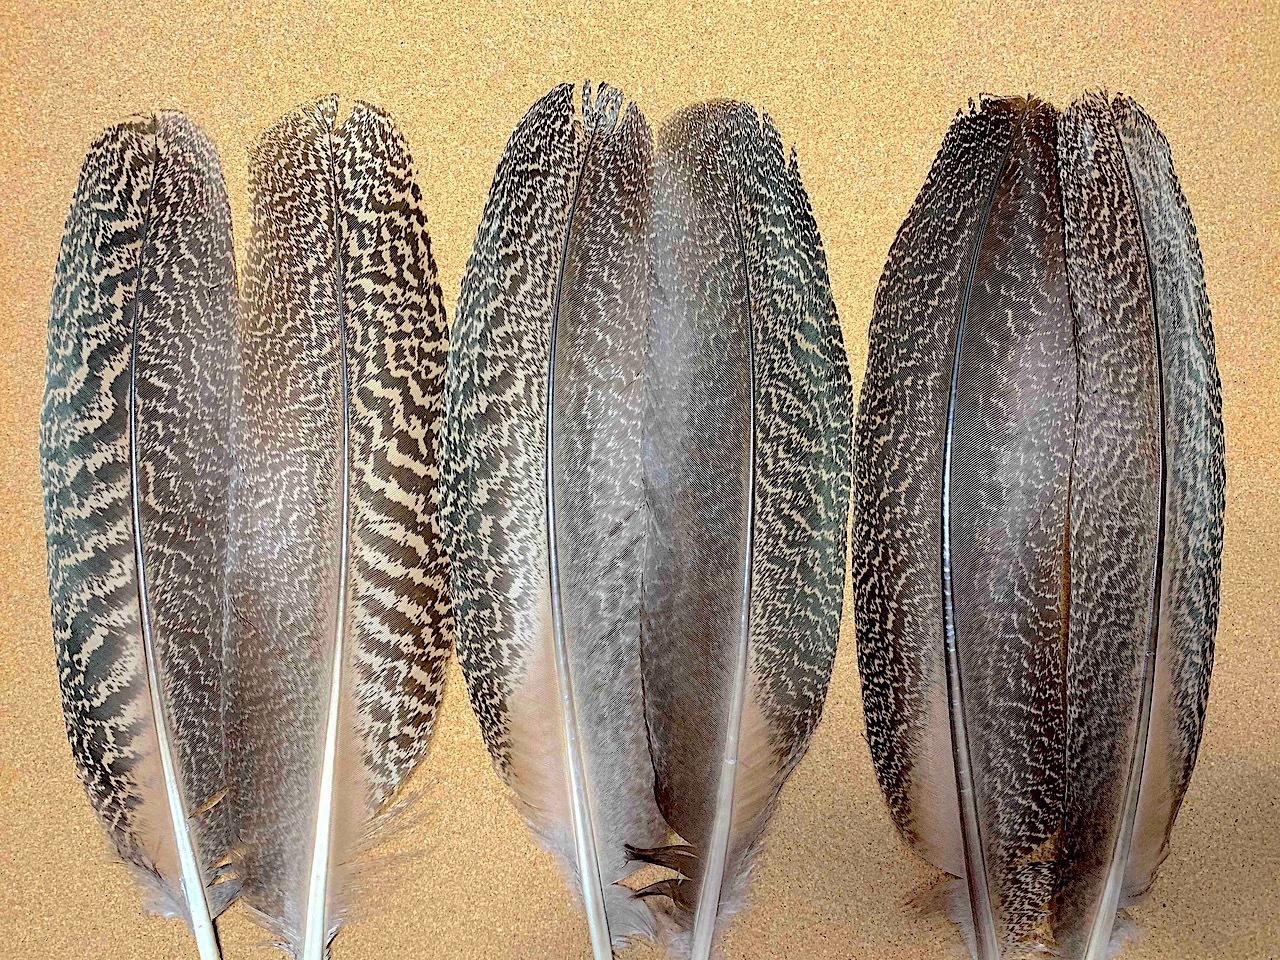 PEACOCK SPECKLED QUILLS